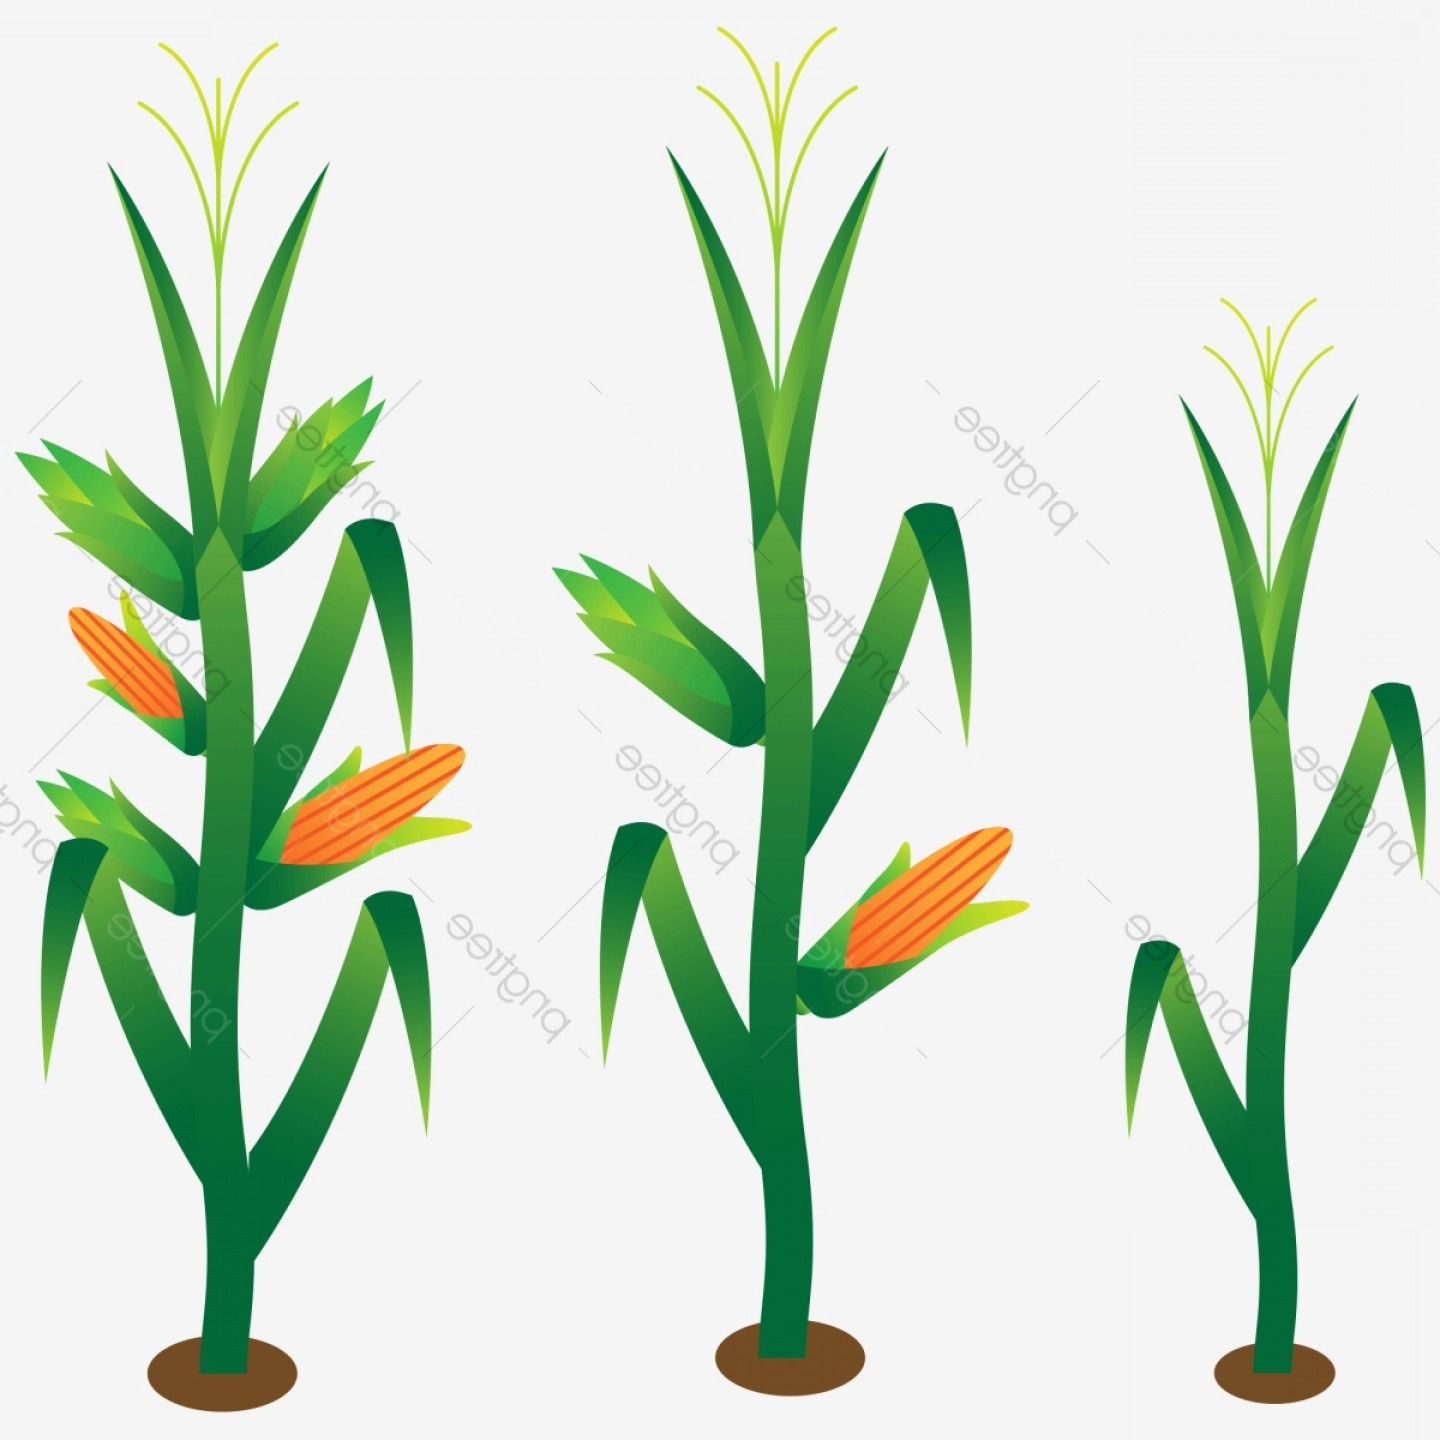 Maize Vector Tree: Hand Painted Corn Corn Stalk Plant